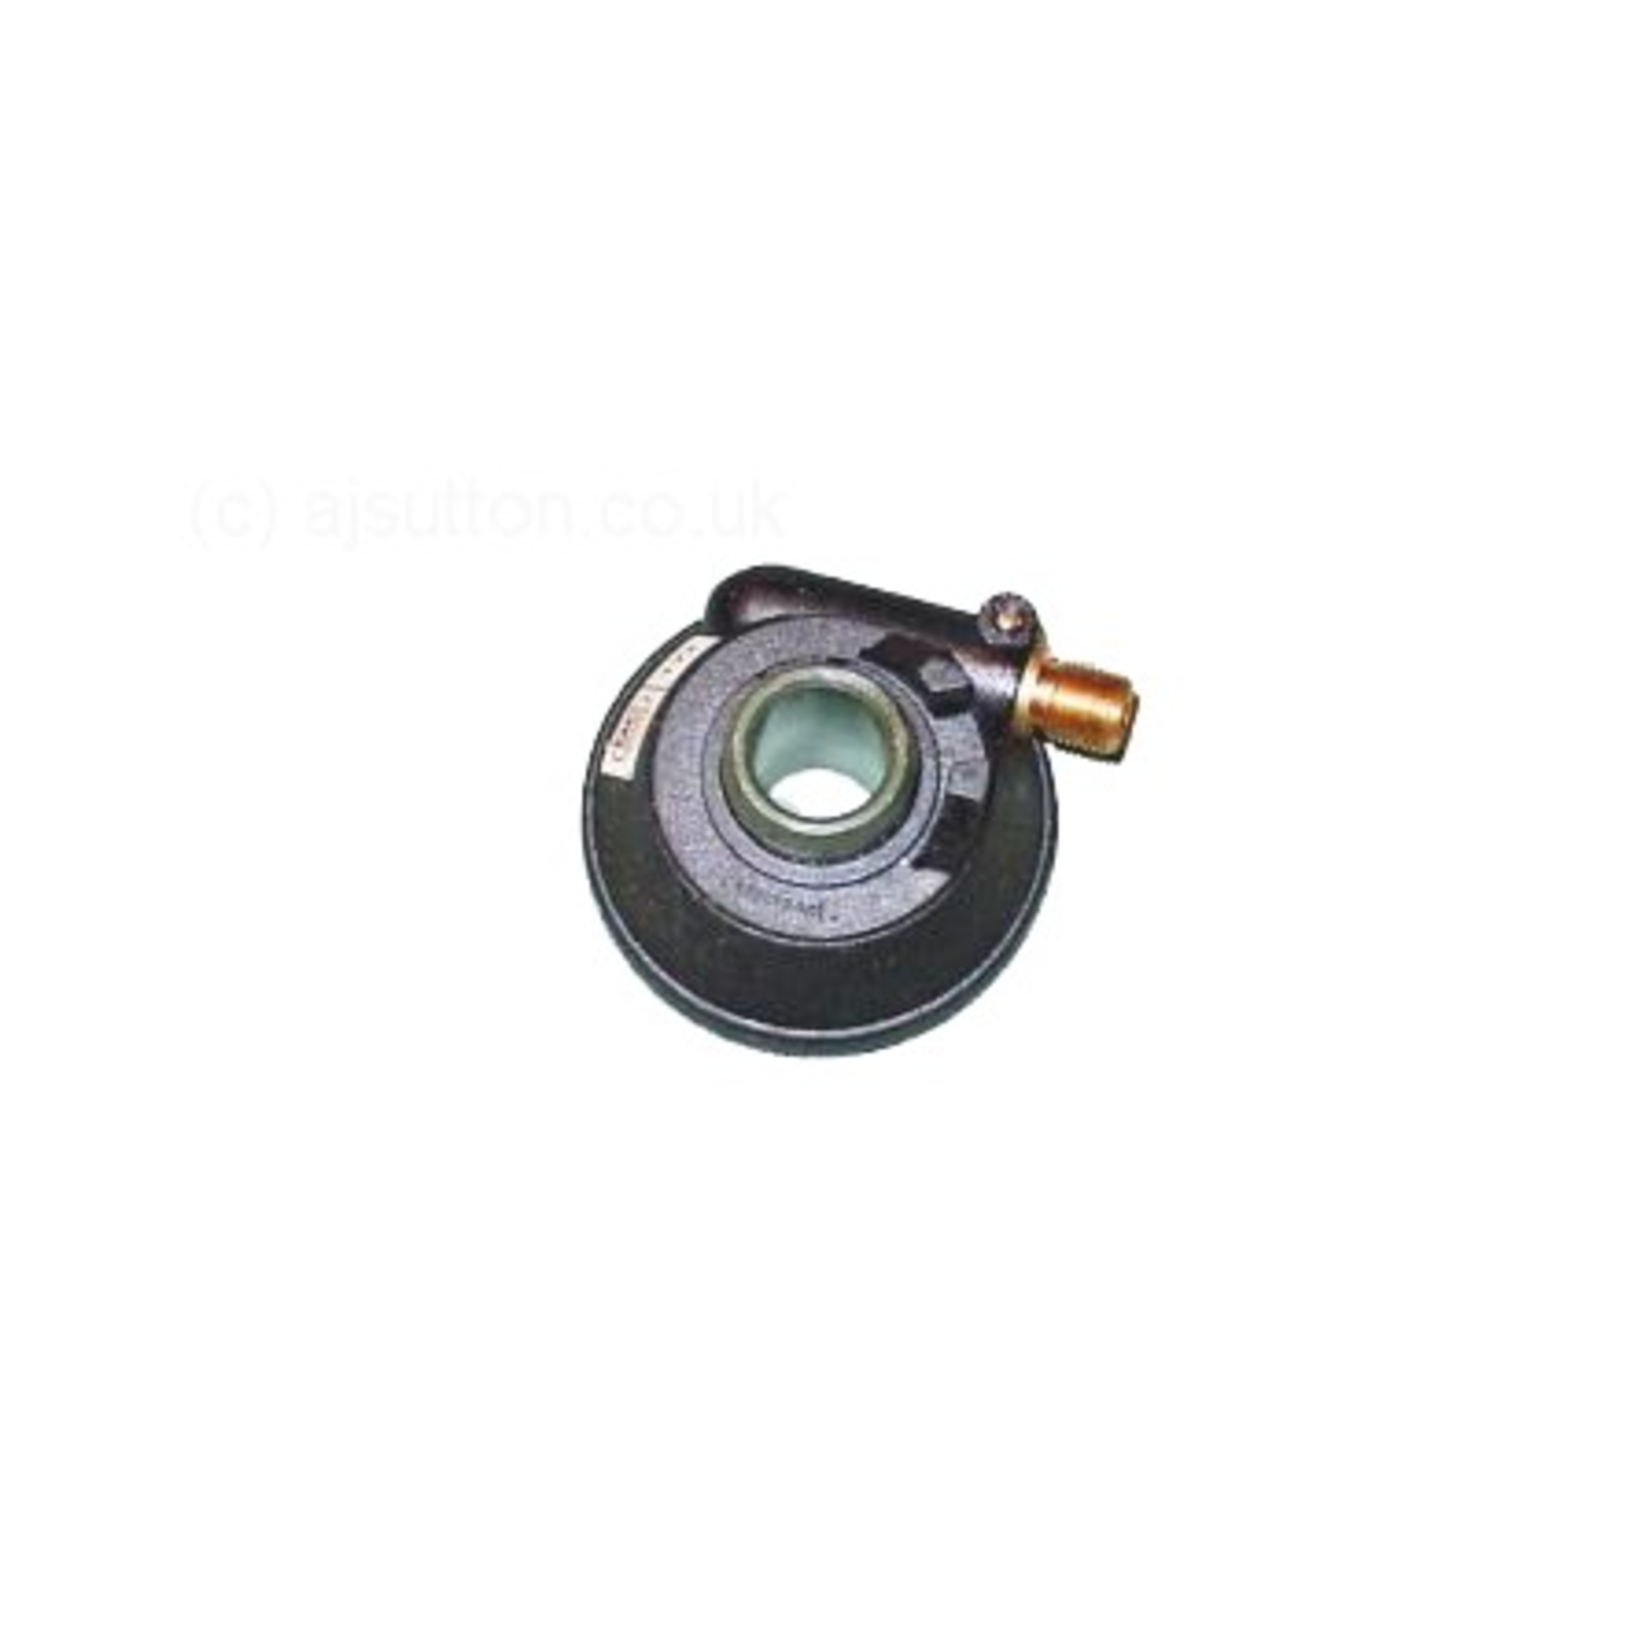 Parts Speedometer Gear Drive, BV250/300/500, Fly50/150